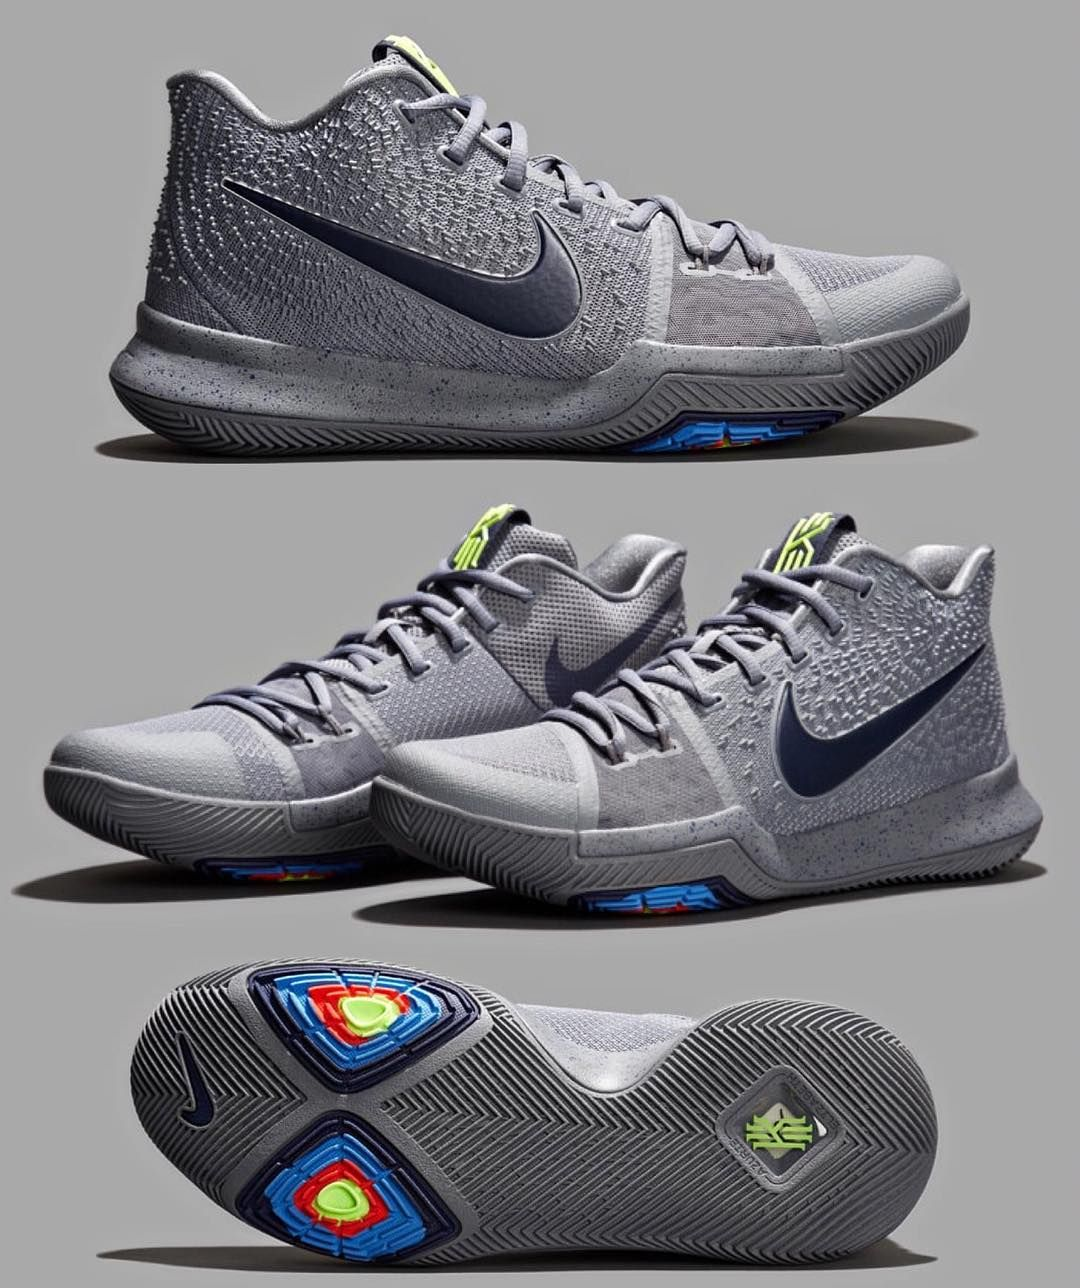 separation shoes 769f4 87c93 Nike Kyrie 3